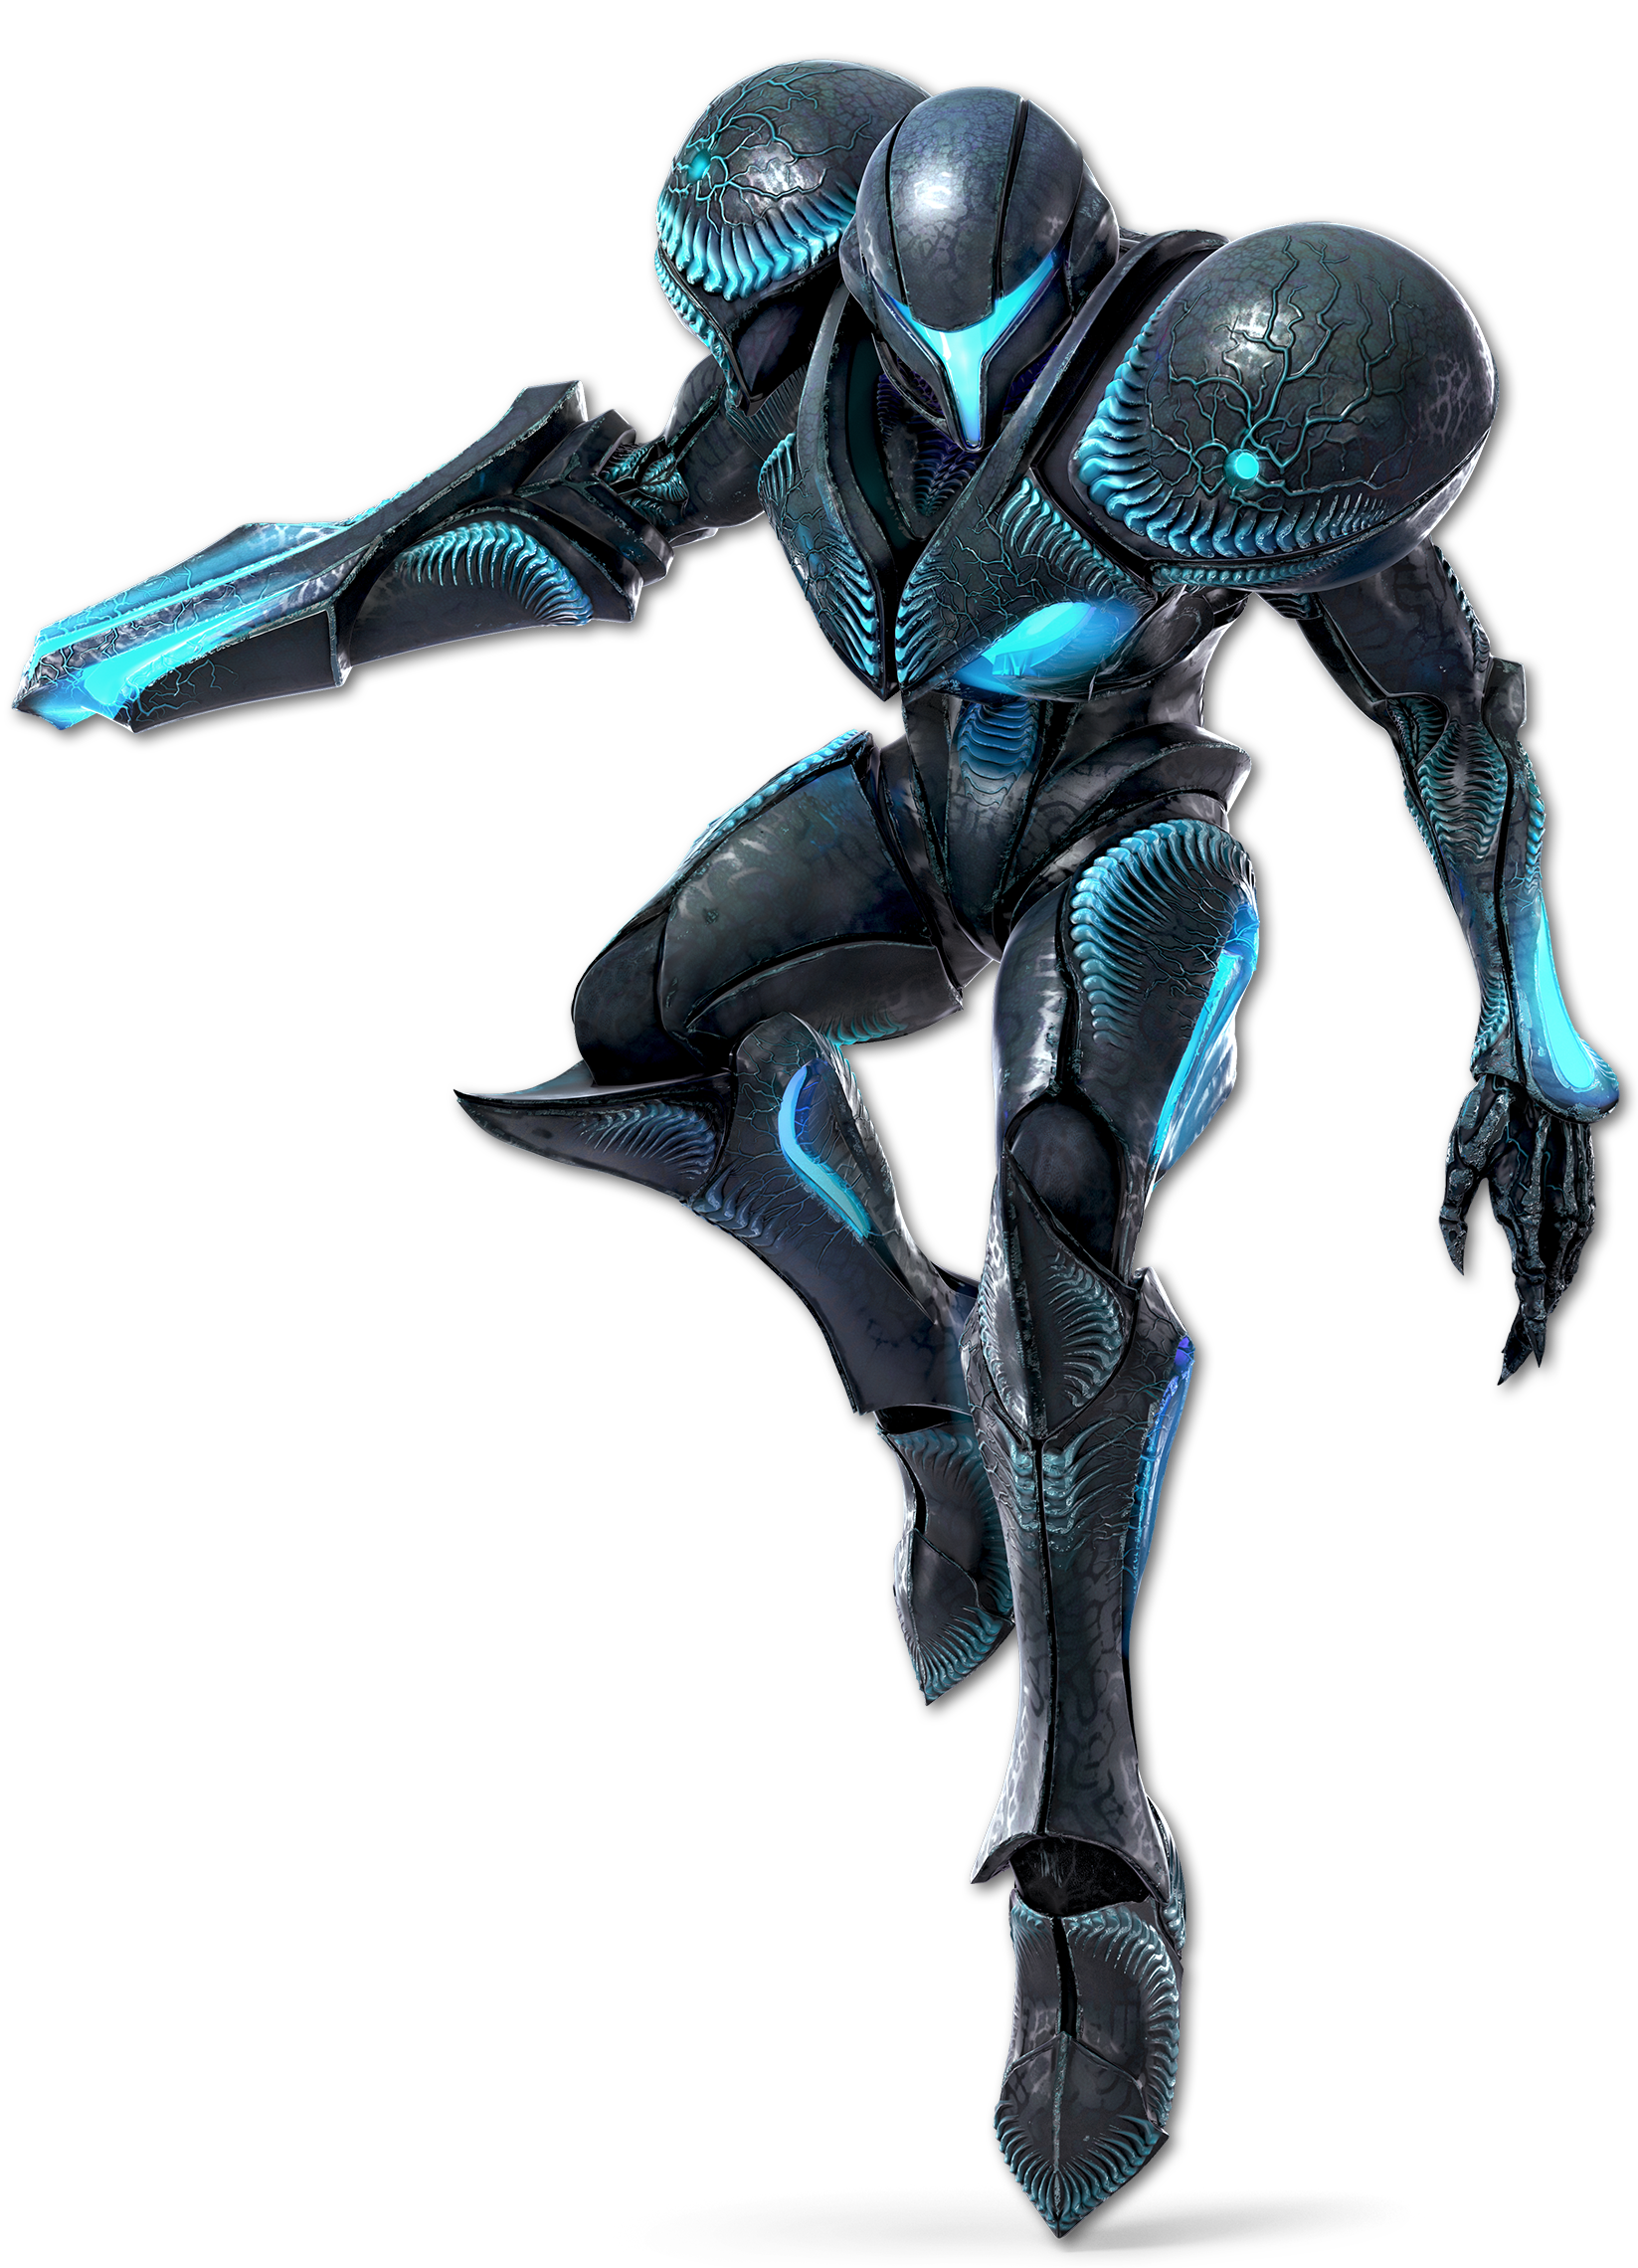 Dark Samus (Super Smash Bros.)